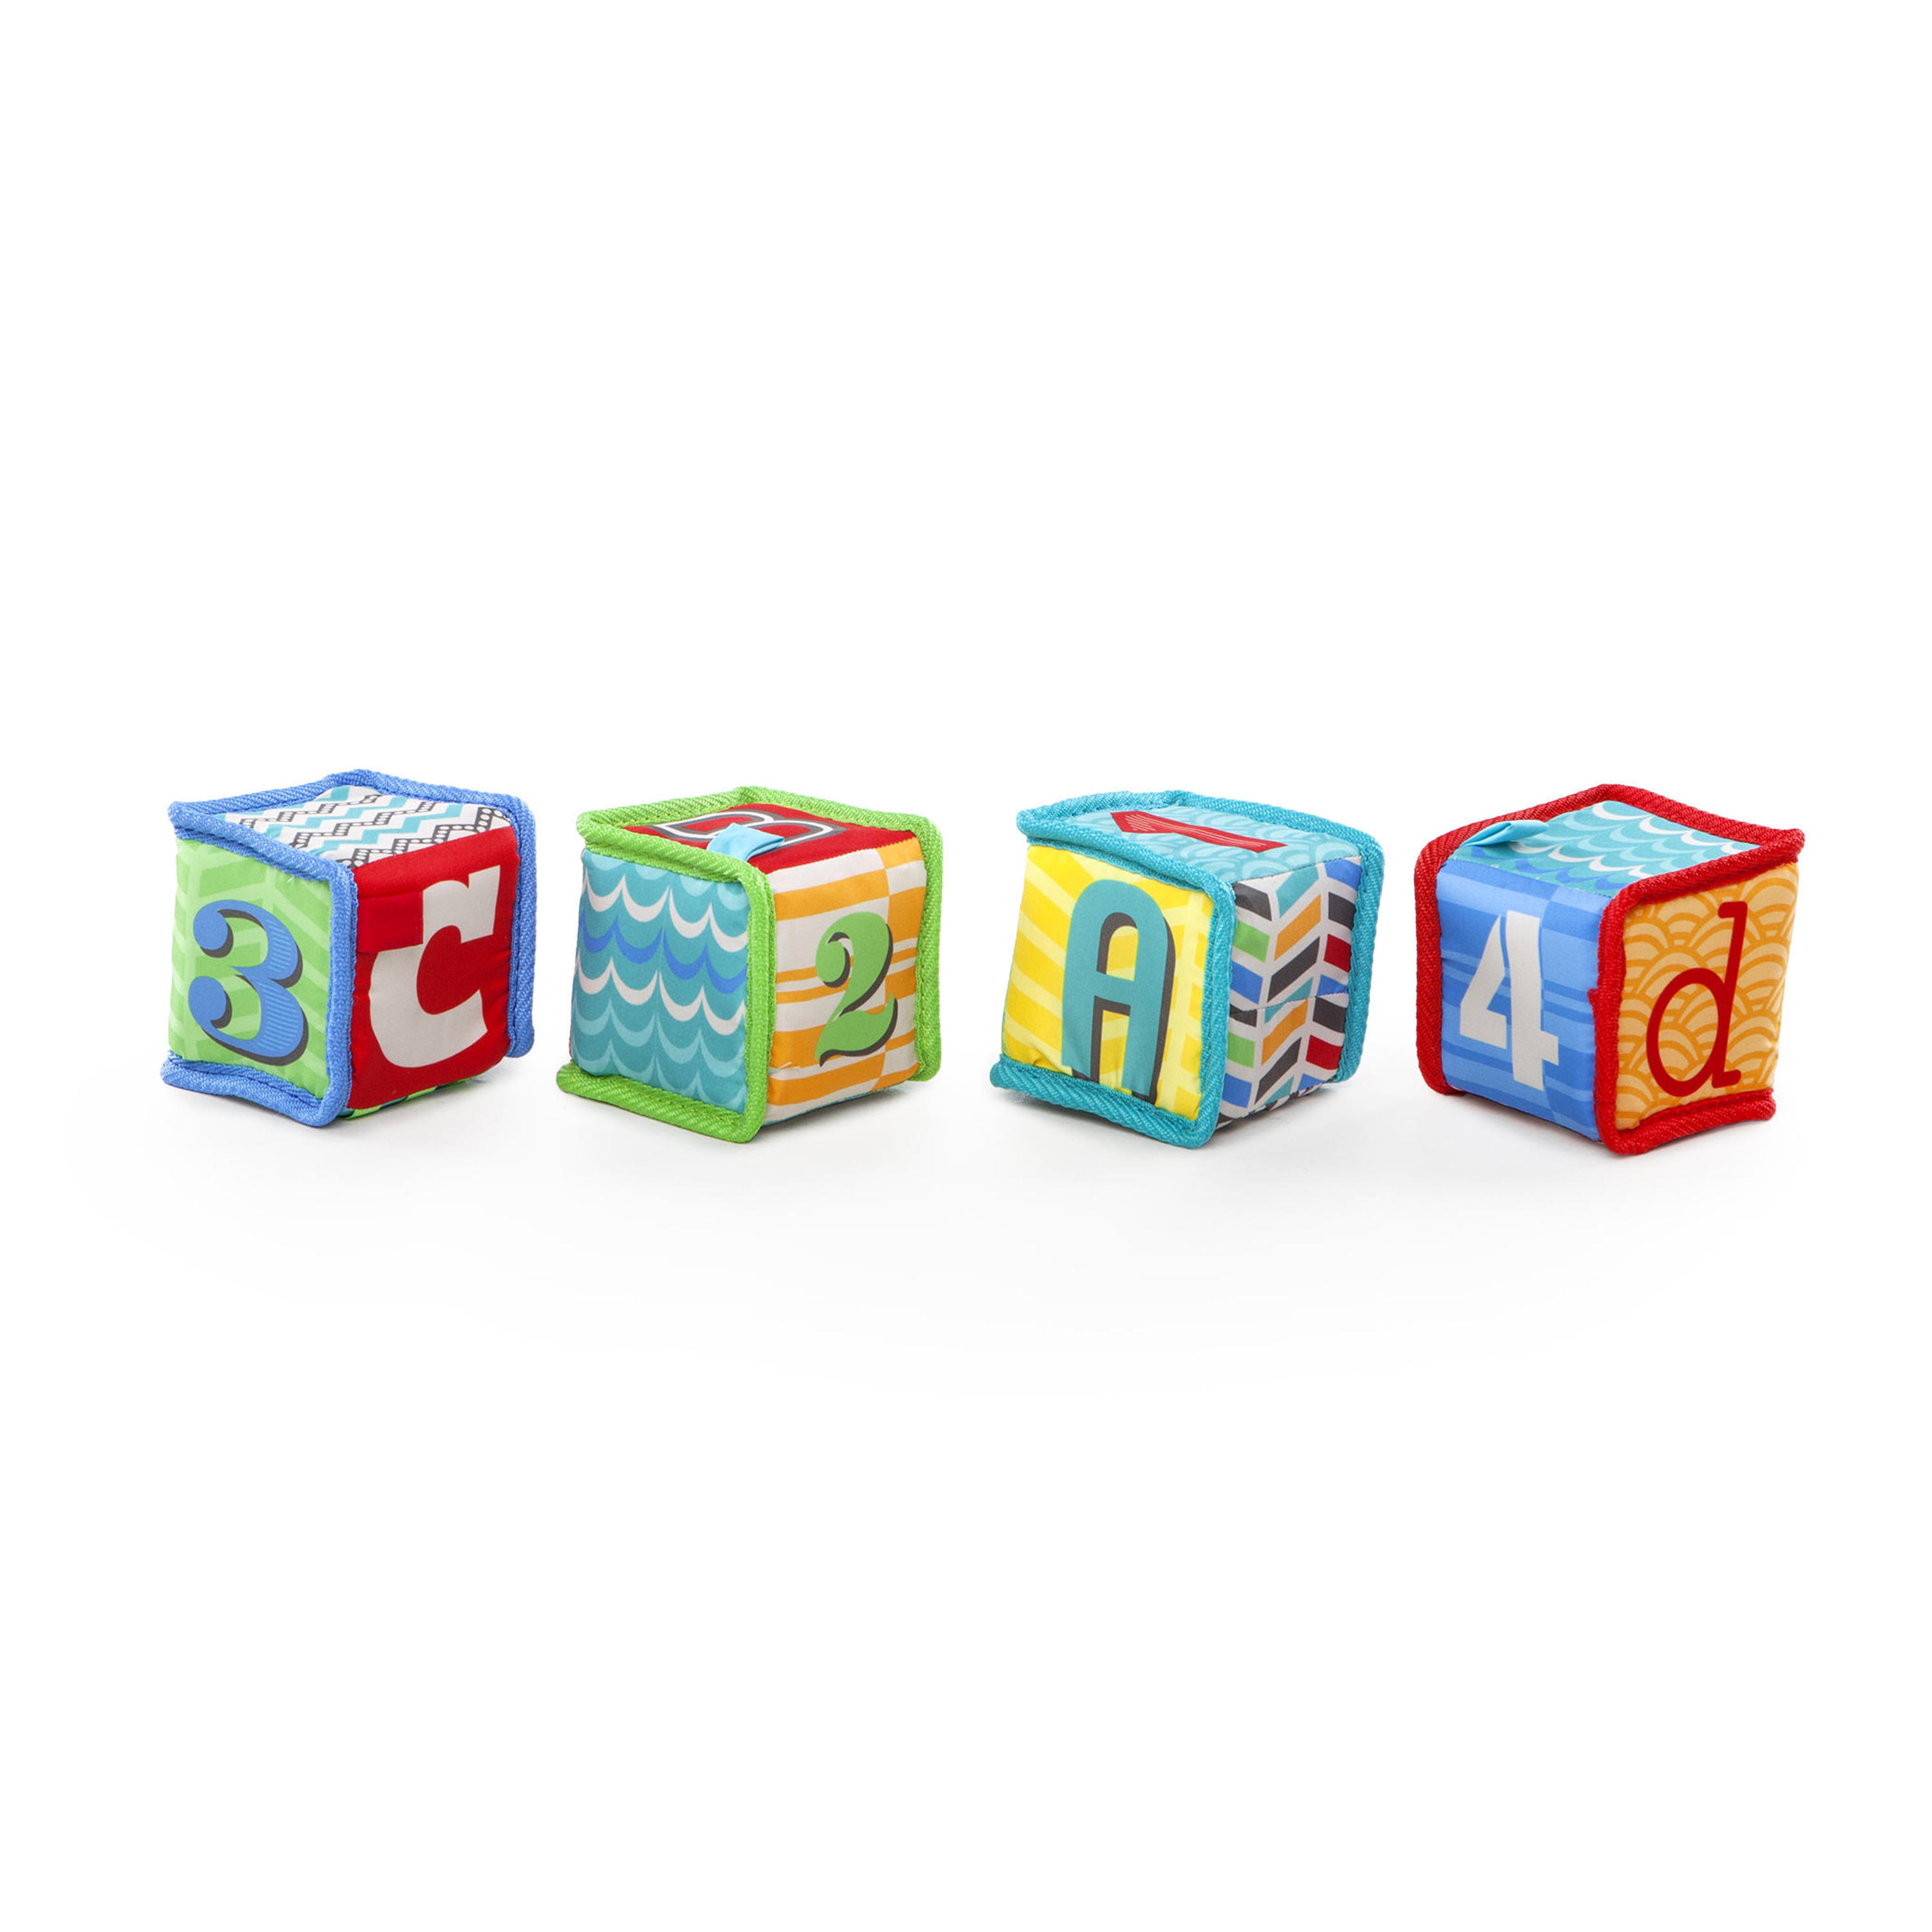 Bright Starts Grab & Stack Blocks by Bright Starts